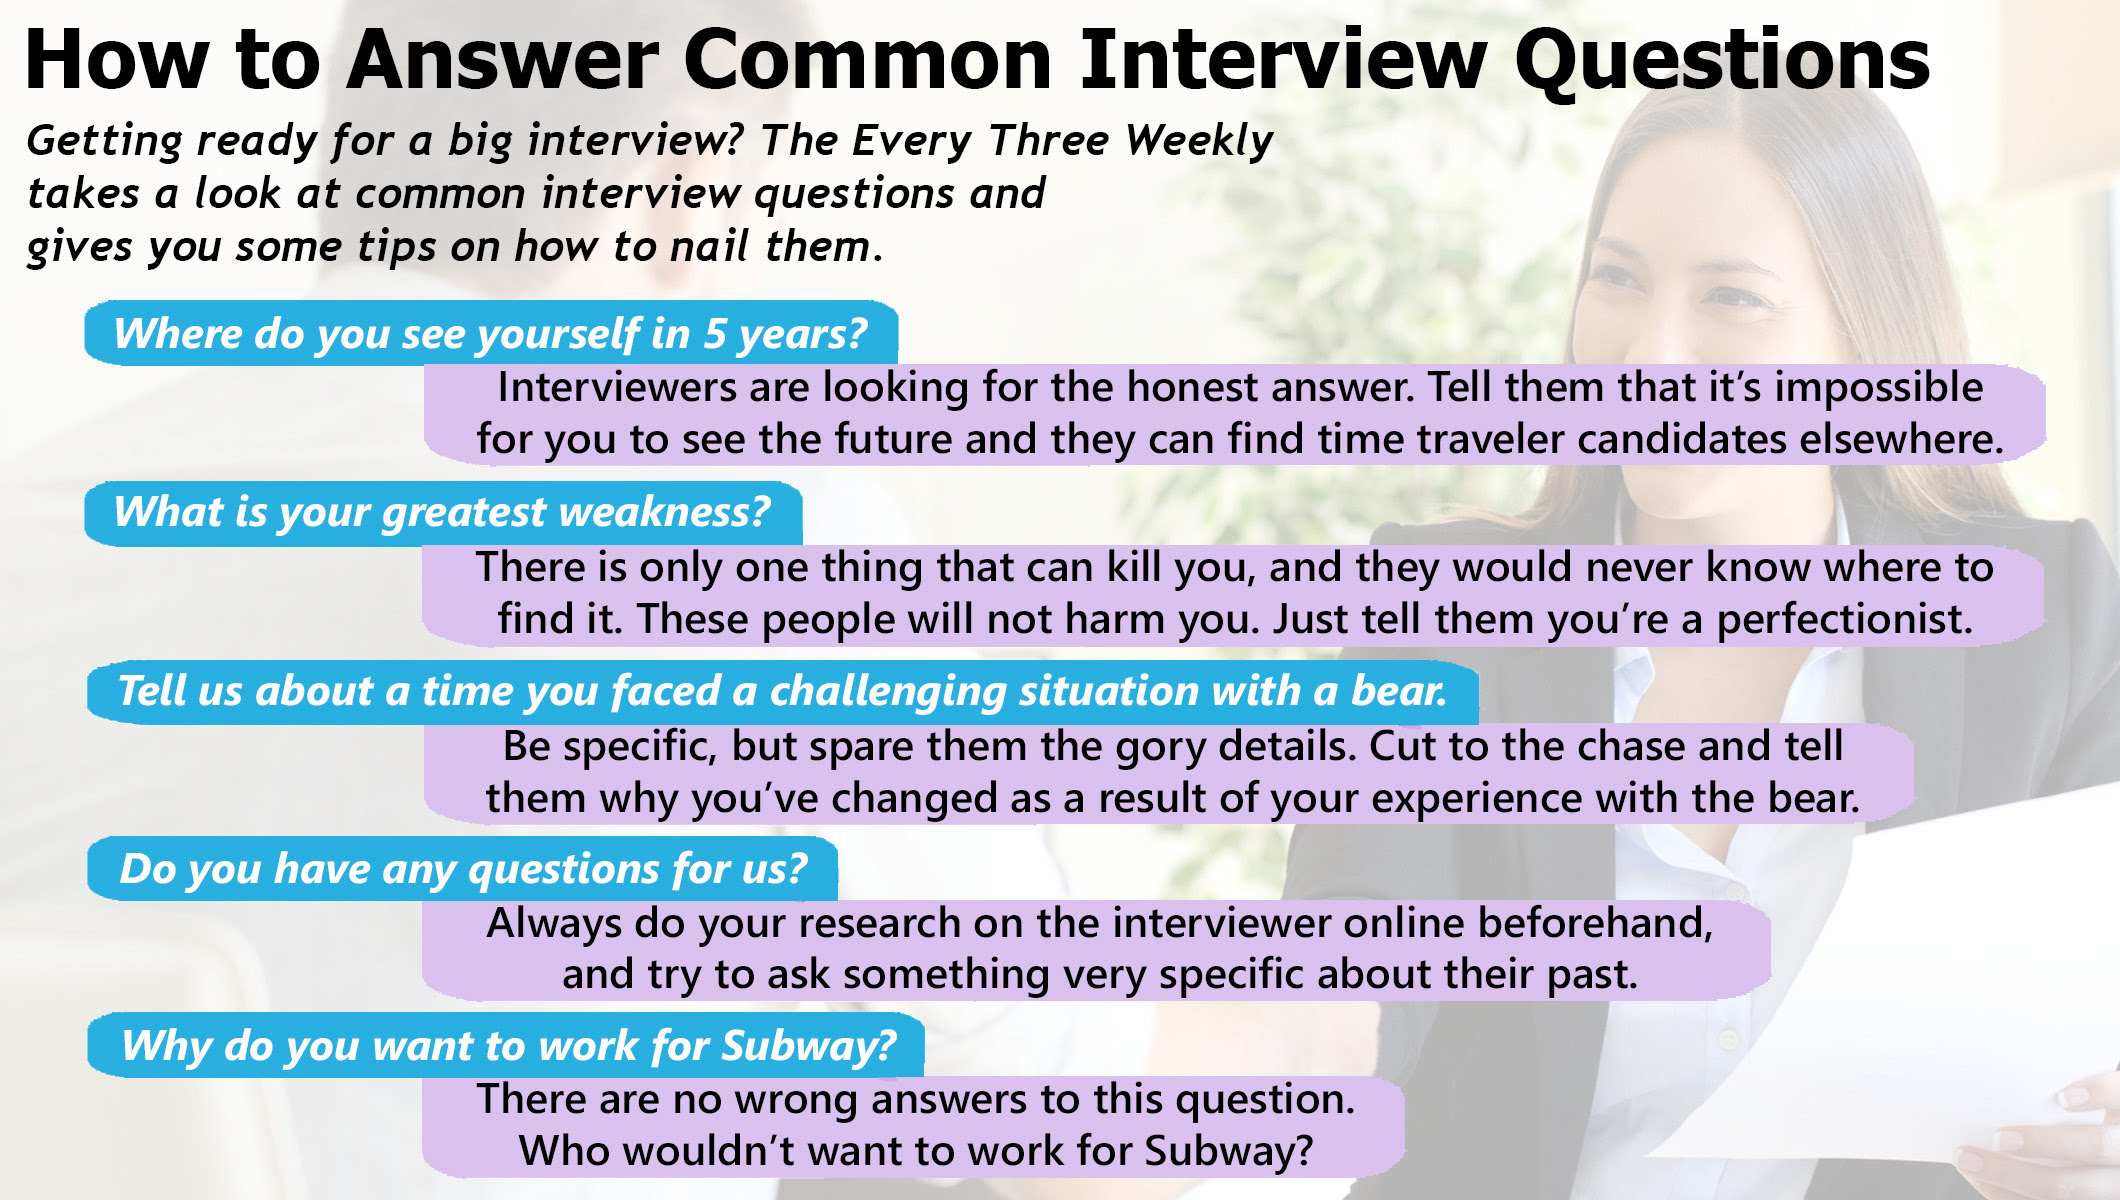 How To Answer Common Interview Questions | The Every Three ...